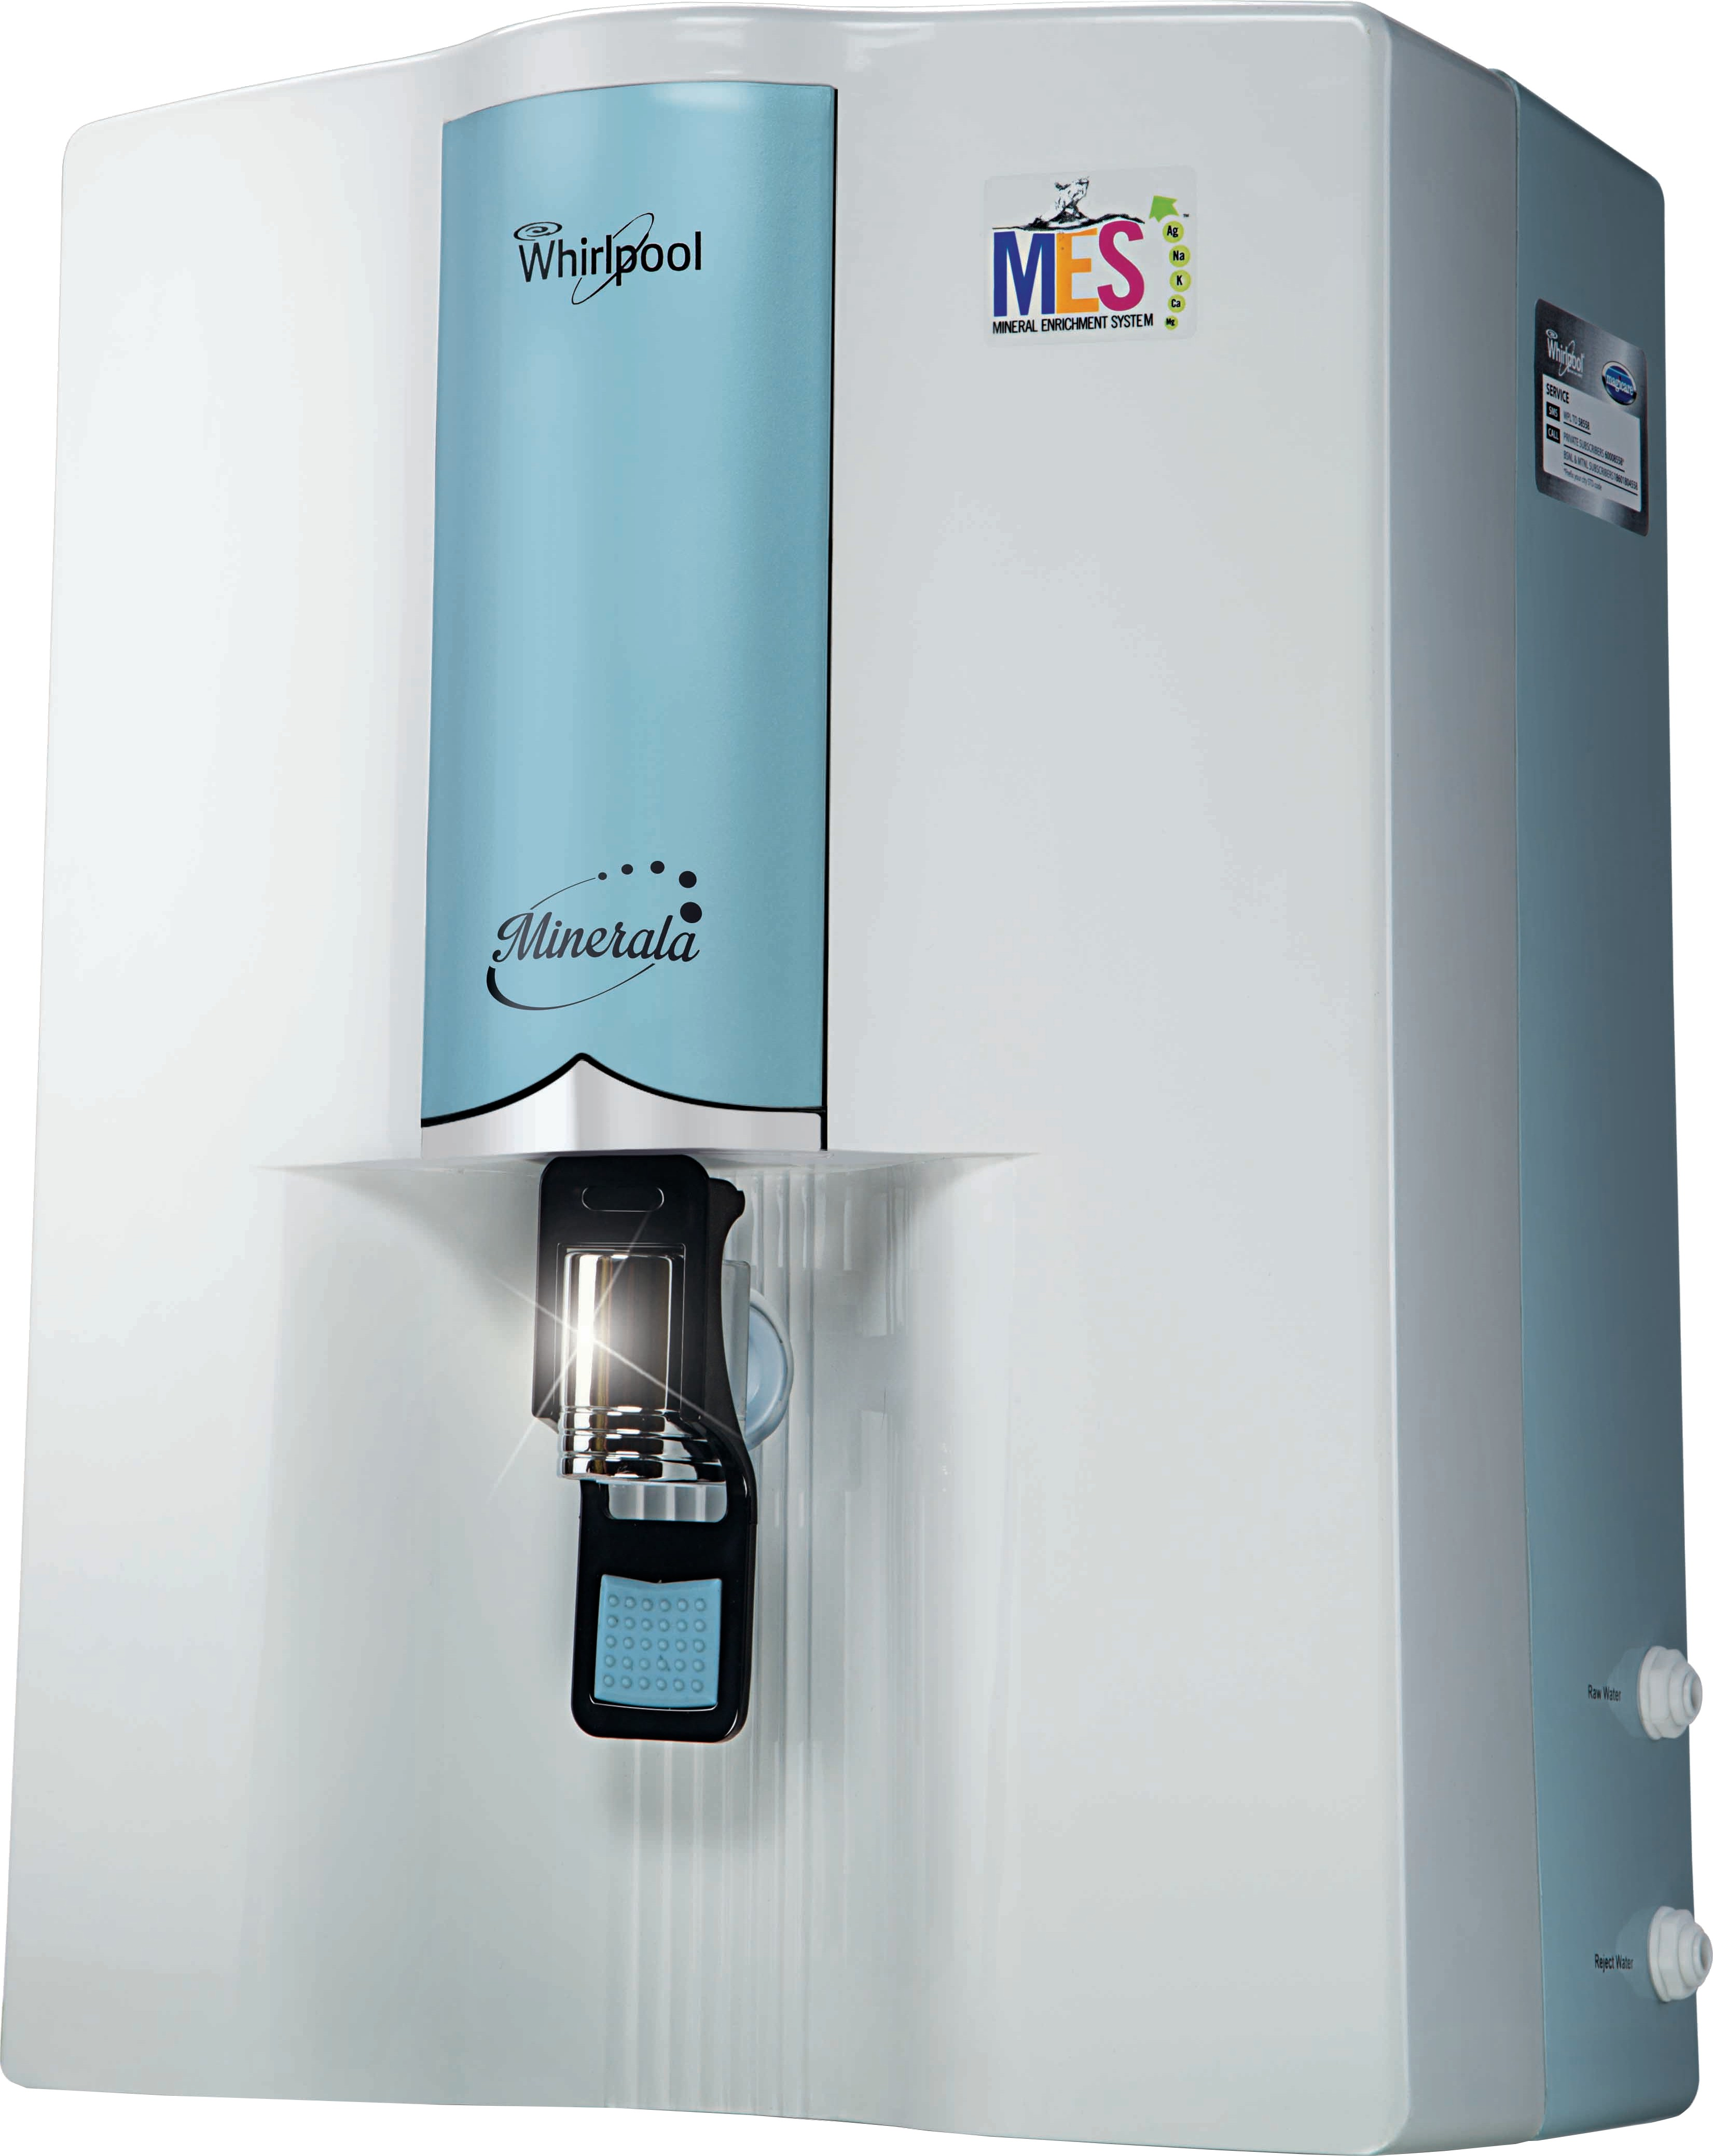 View Whirlpool Minerala 90 Classic 8.5 L RO Water Purifier(Blue) Home Appliances Price Online(Whirlpool)